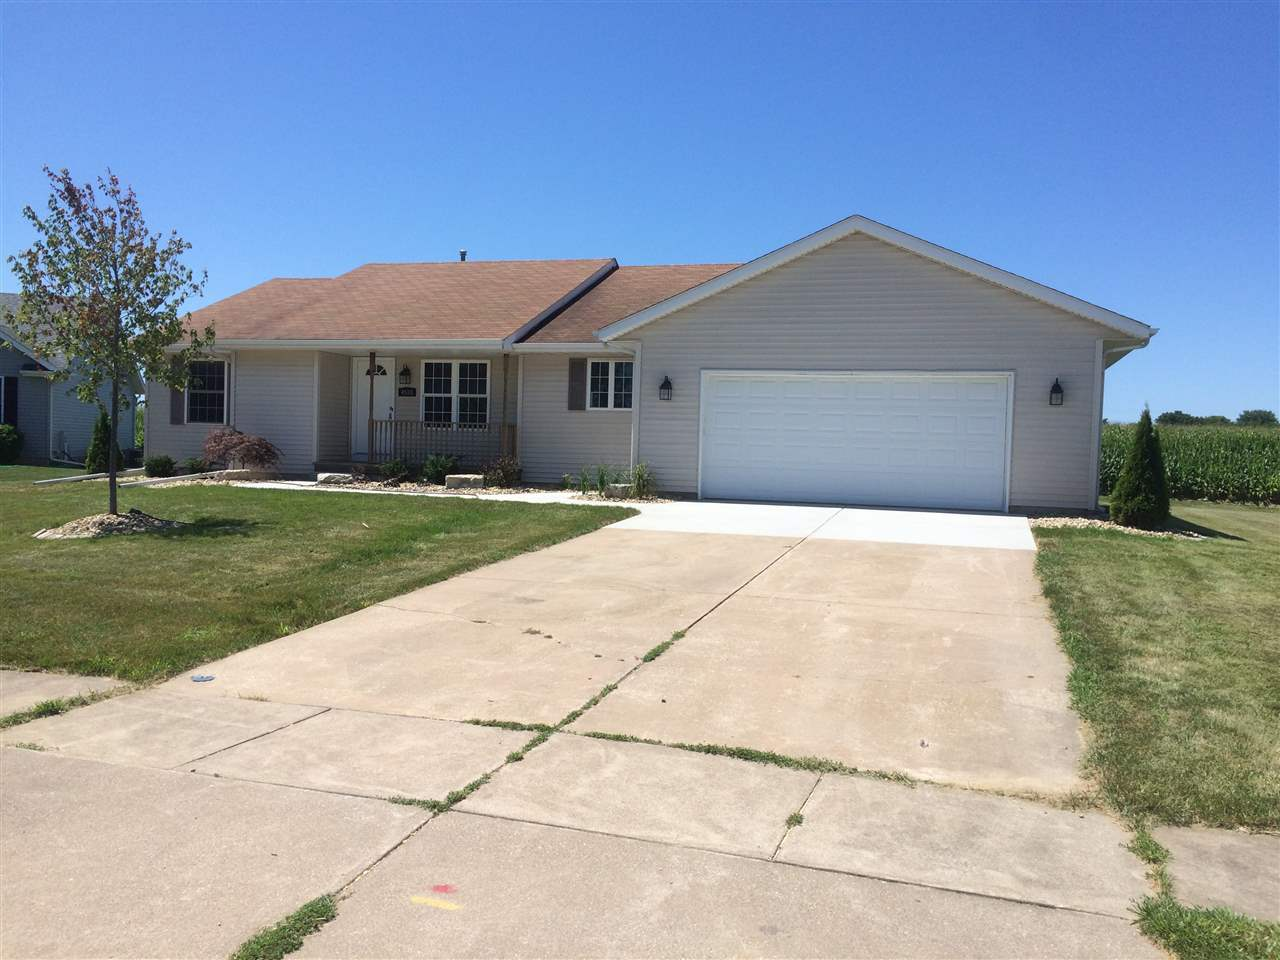 Rental Homes for Rent, ListingId:34663840, location: 4510 Ruehmann C 0 Davenport 52801